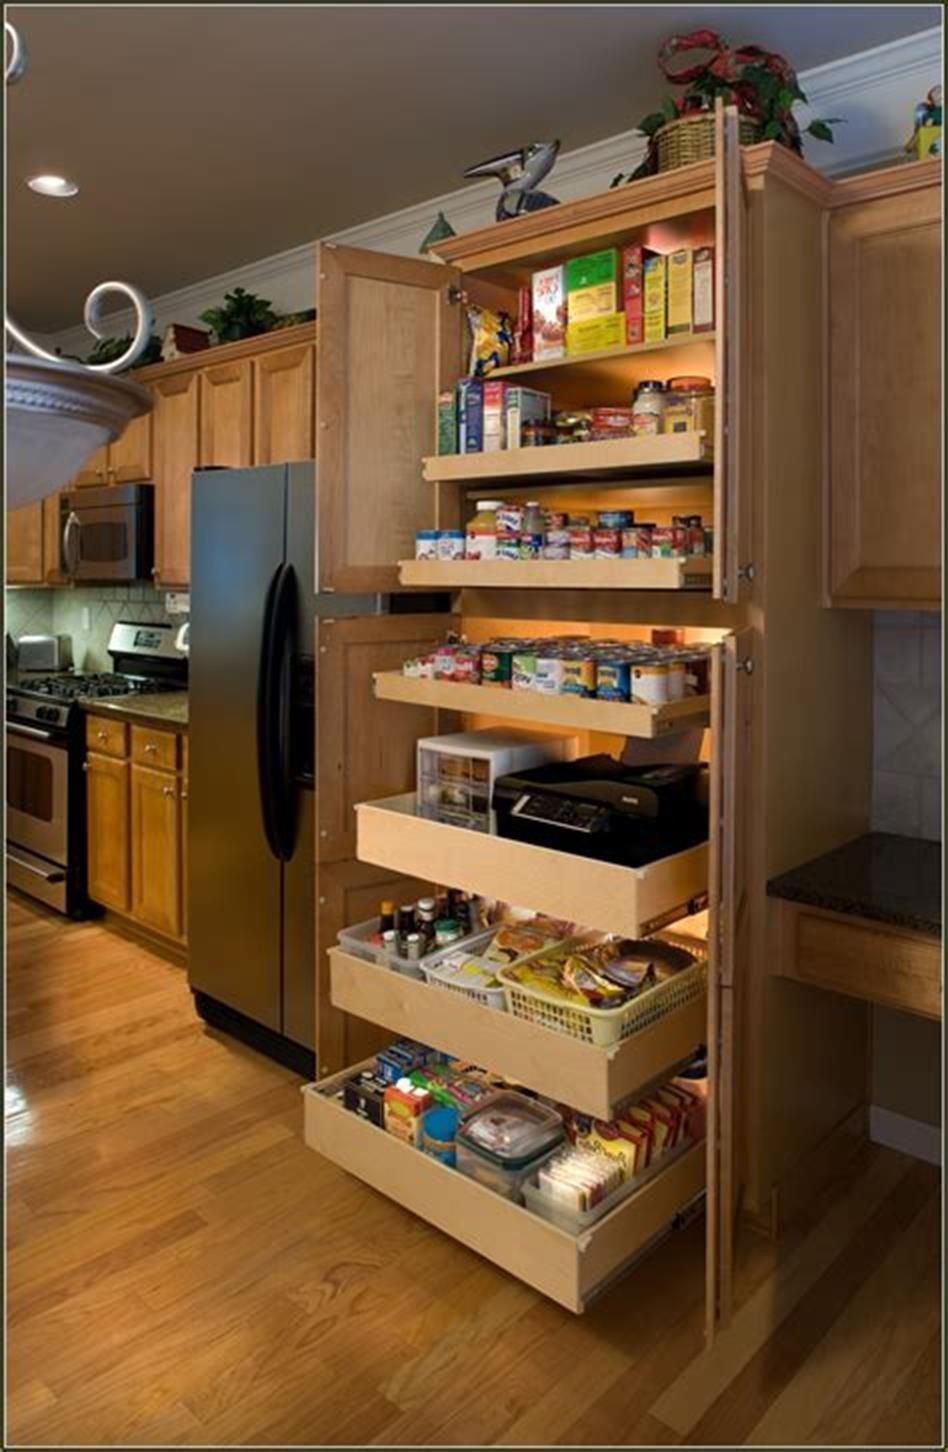 40 diy ideas kitchen cabinet organizers 20 on clever ideas for diy kitchen cabinet organization tips for organizers id=37281